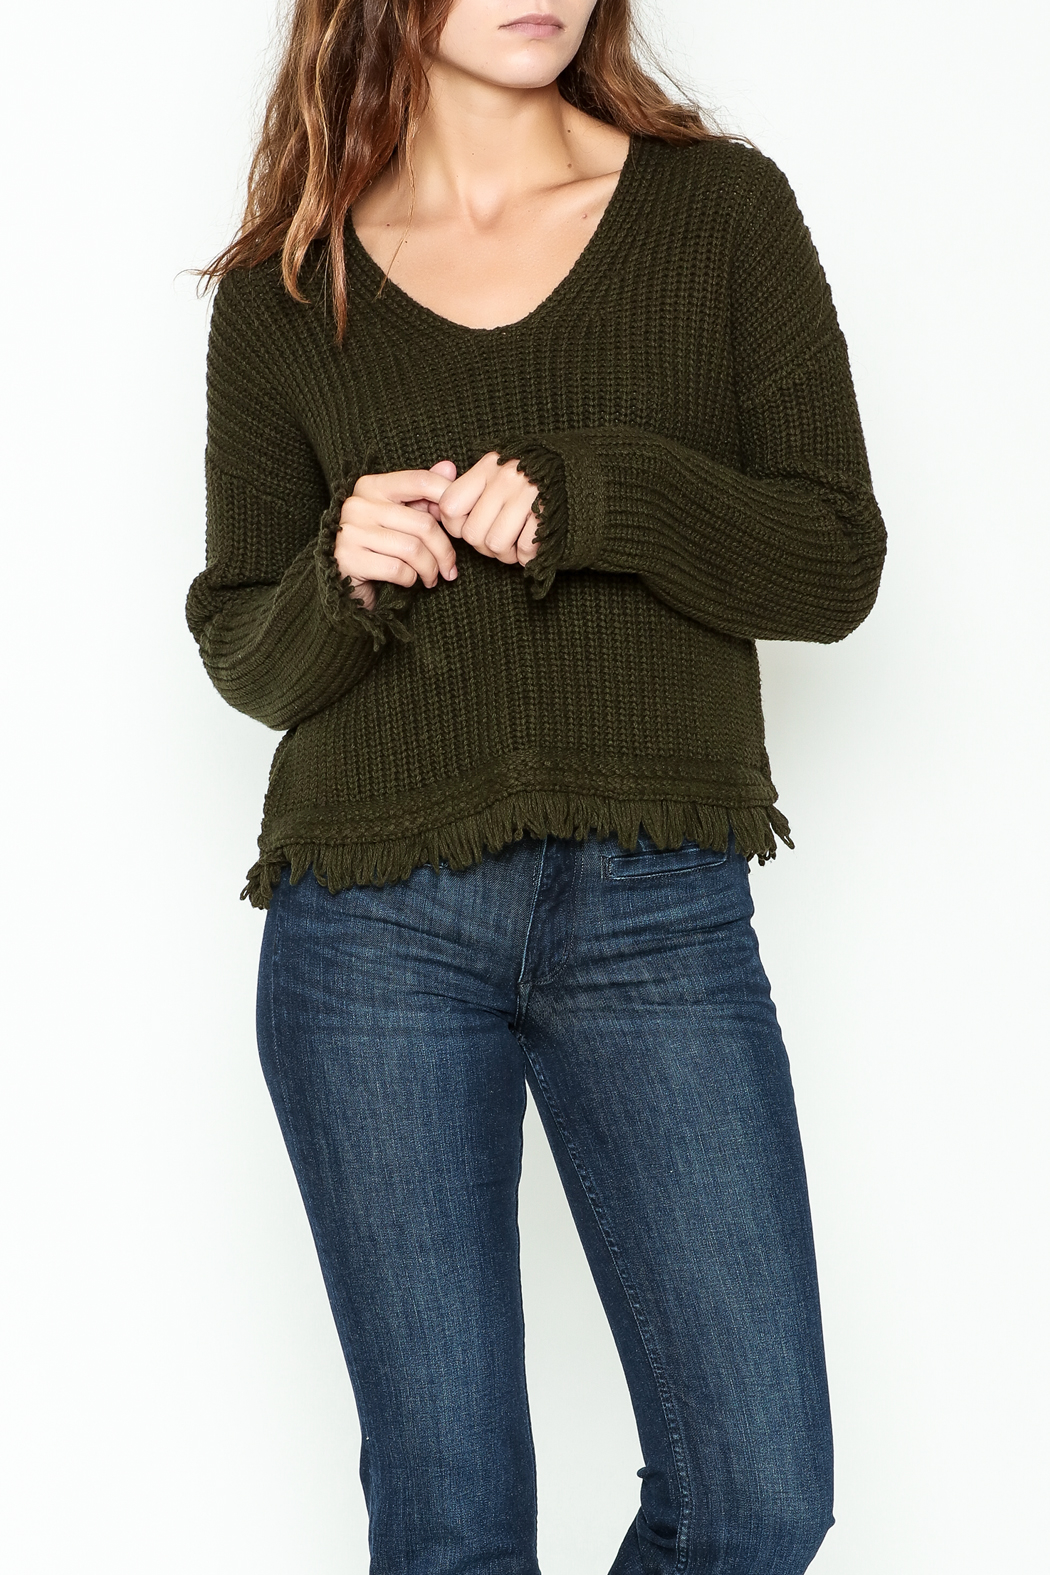 Margaret O'Leary Maeve Pullover Top - Main Image